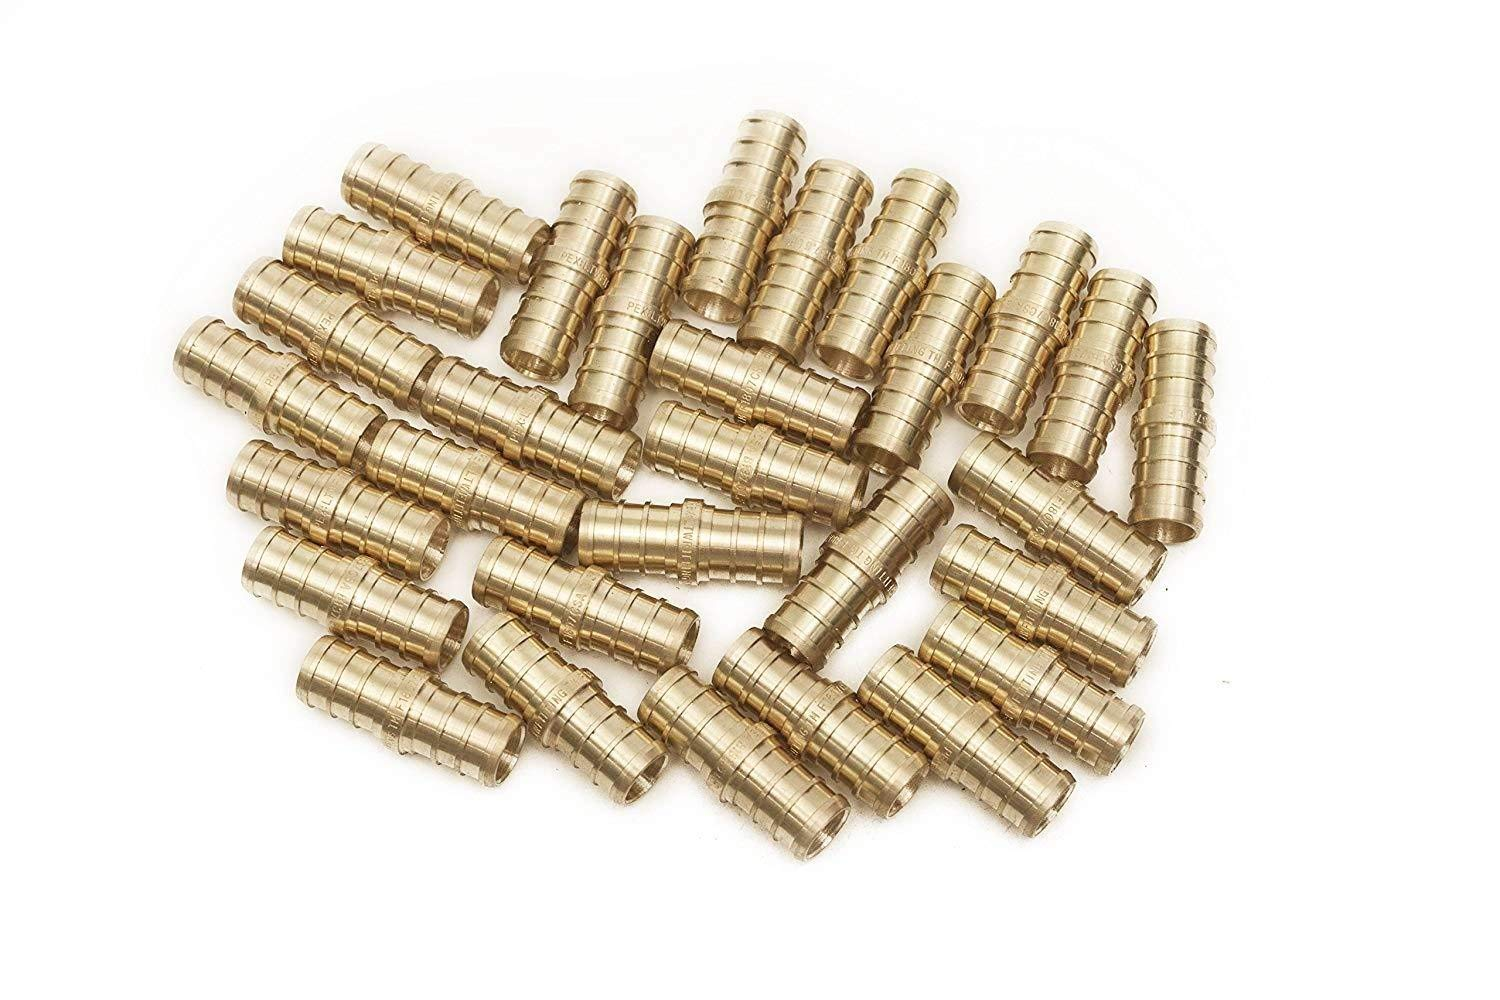 PEX 1/2 Inch Barb Straight Coupling Crimp Fitting - Bag of 50 pcs/Brass / 1/2''